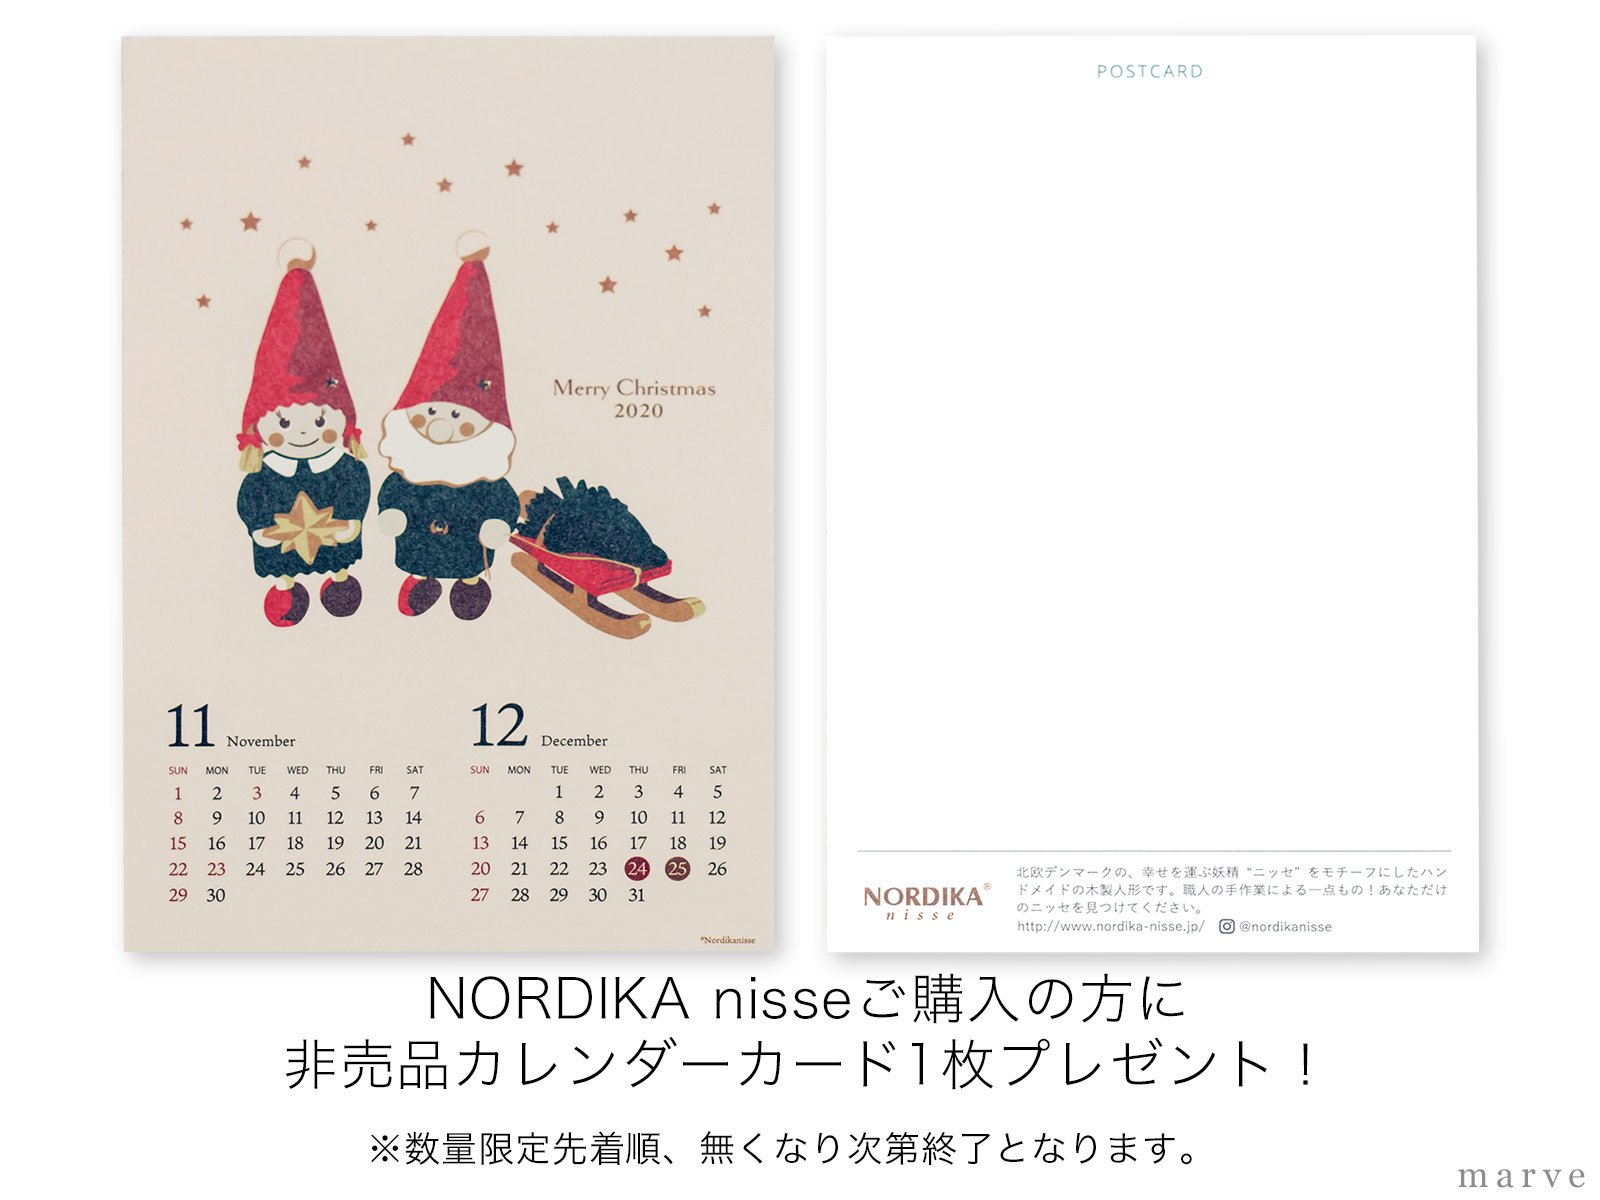 NORDIKA design ニッセドール 「フォークとナイフを持ったサンタ ホーム」<img class='new_mark_img2' src='https://img.shop-pro.jp/img/new/icons1.gif' style='border:none;display:inline;margin:0px;padding:0px;width:auto;' />